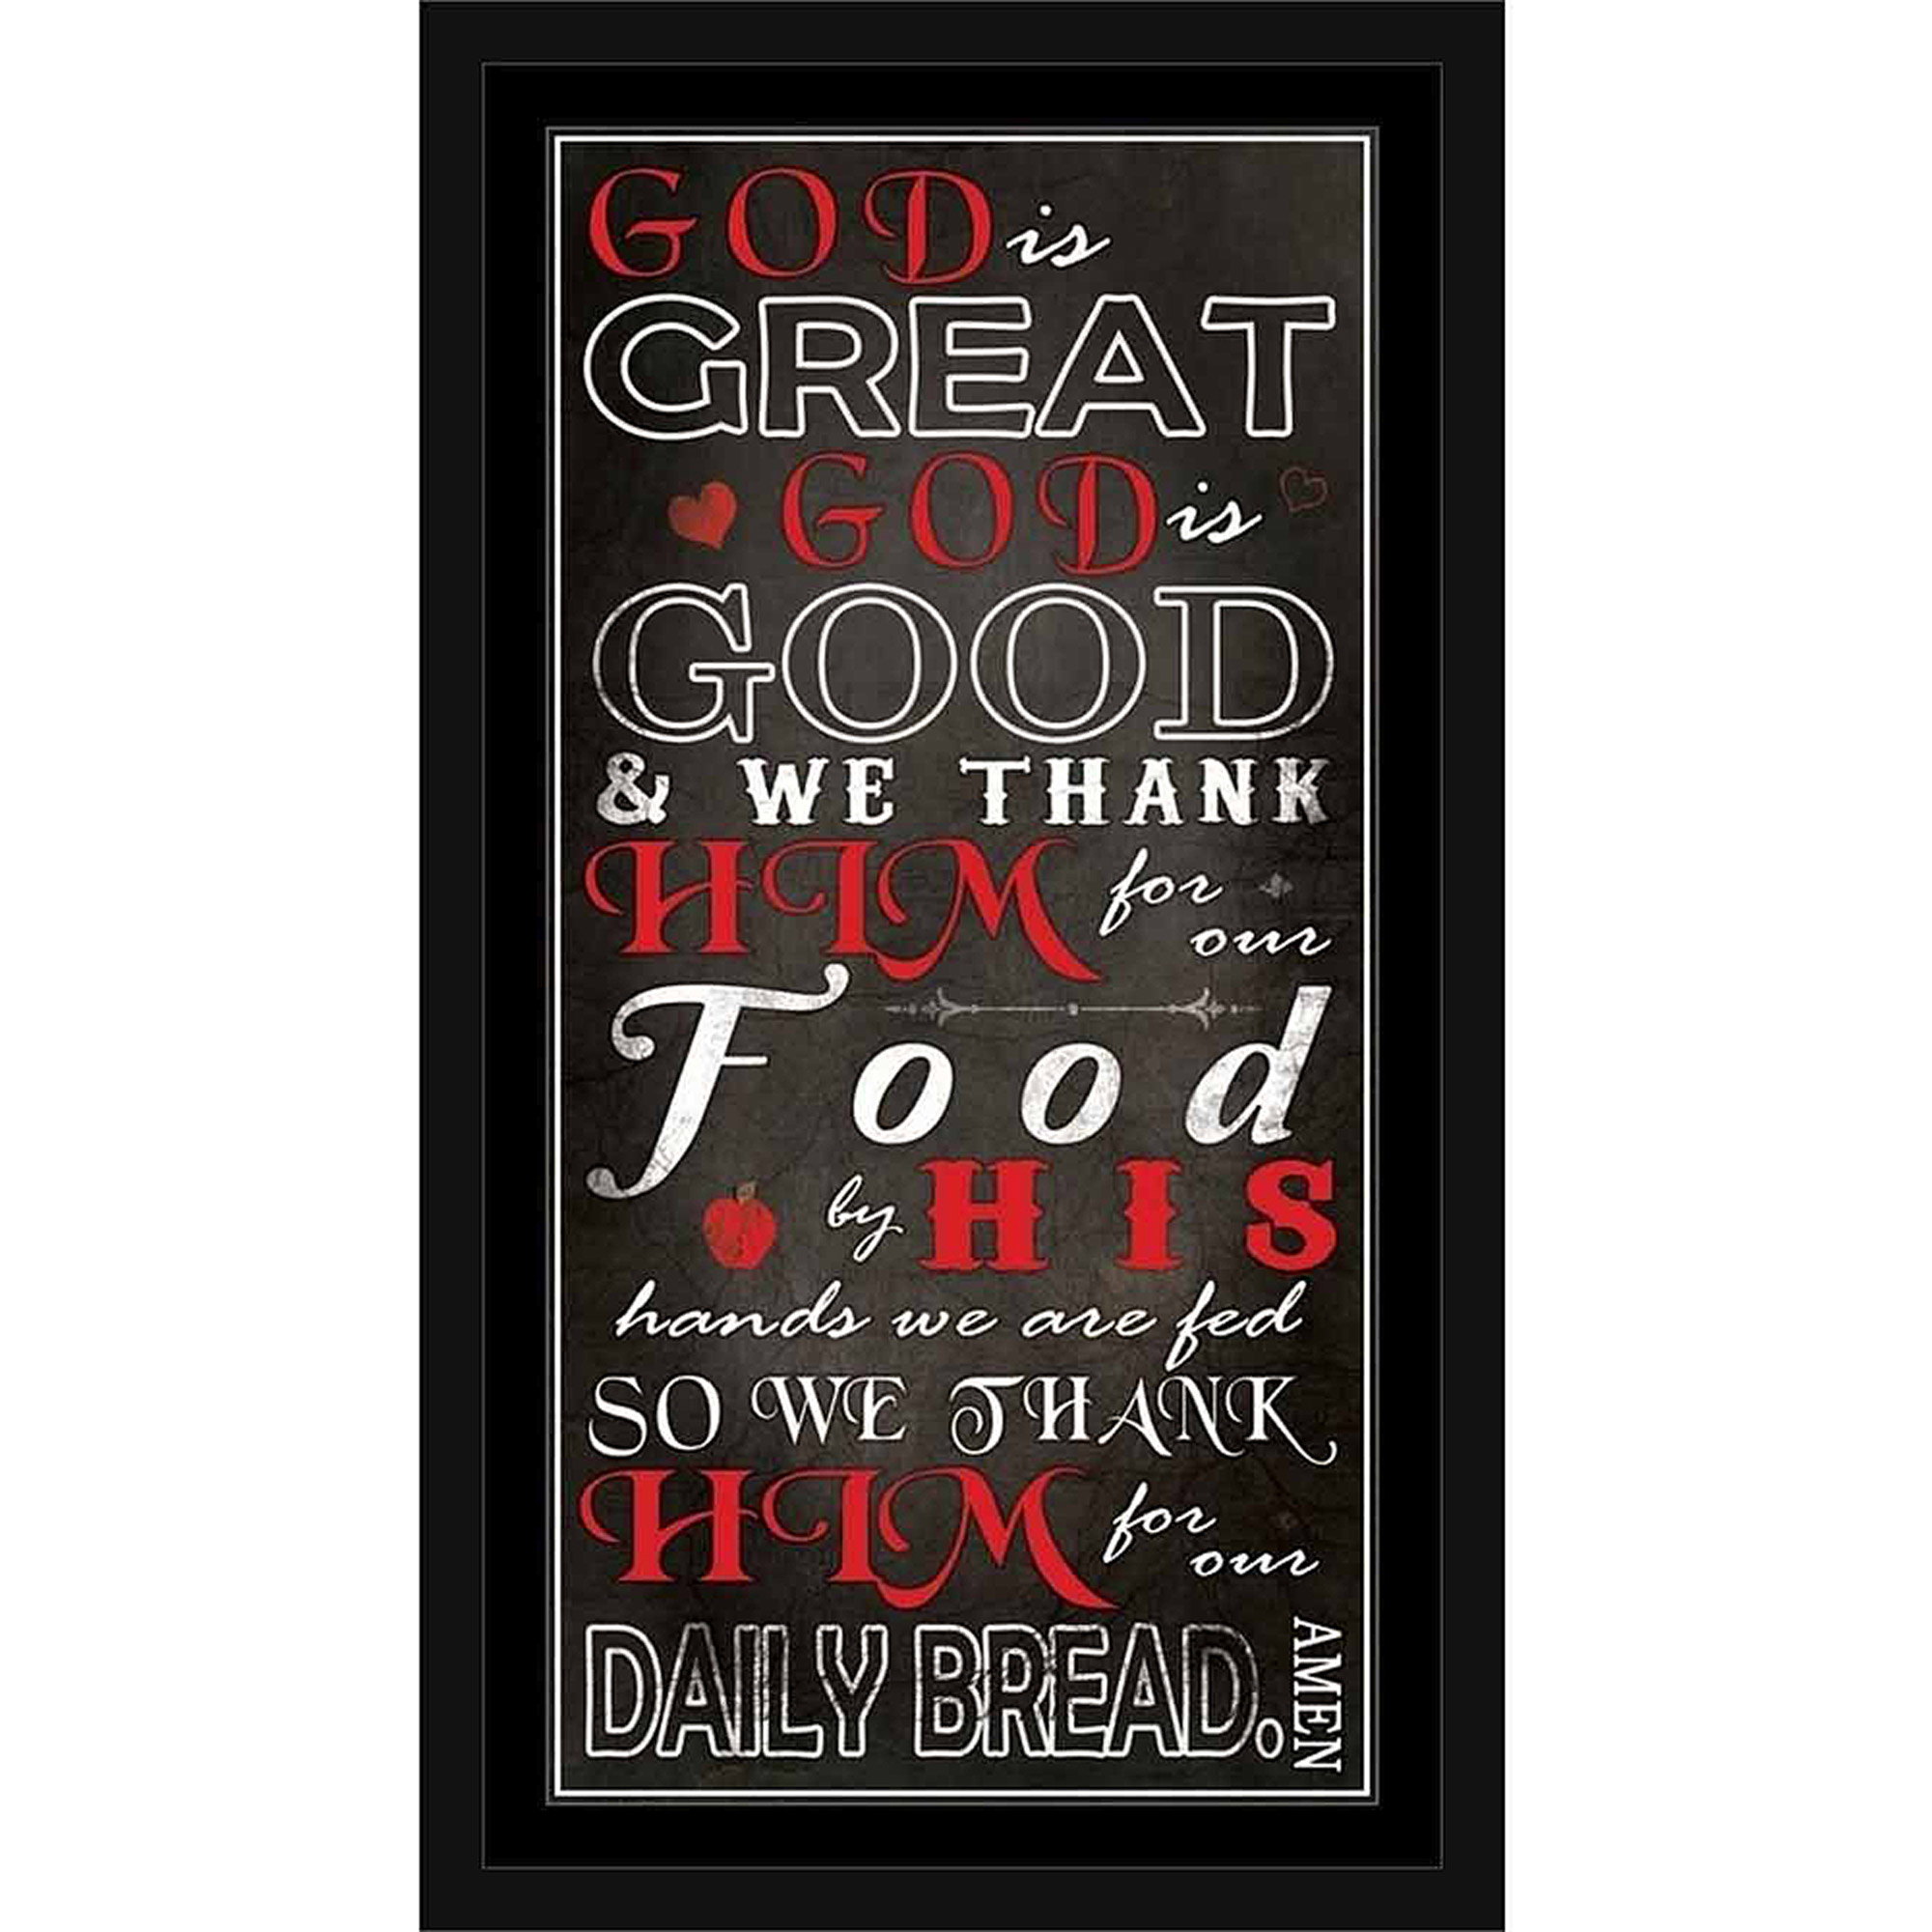 God Is Great God Is Good Kitchen Dinner Prayer Religious Typography Black & Red, Framed... by Circle Graphics